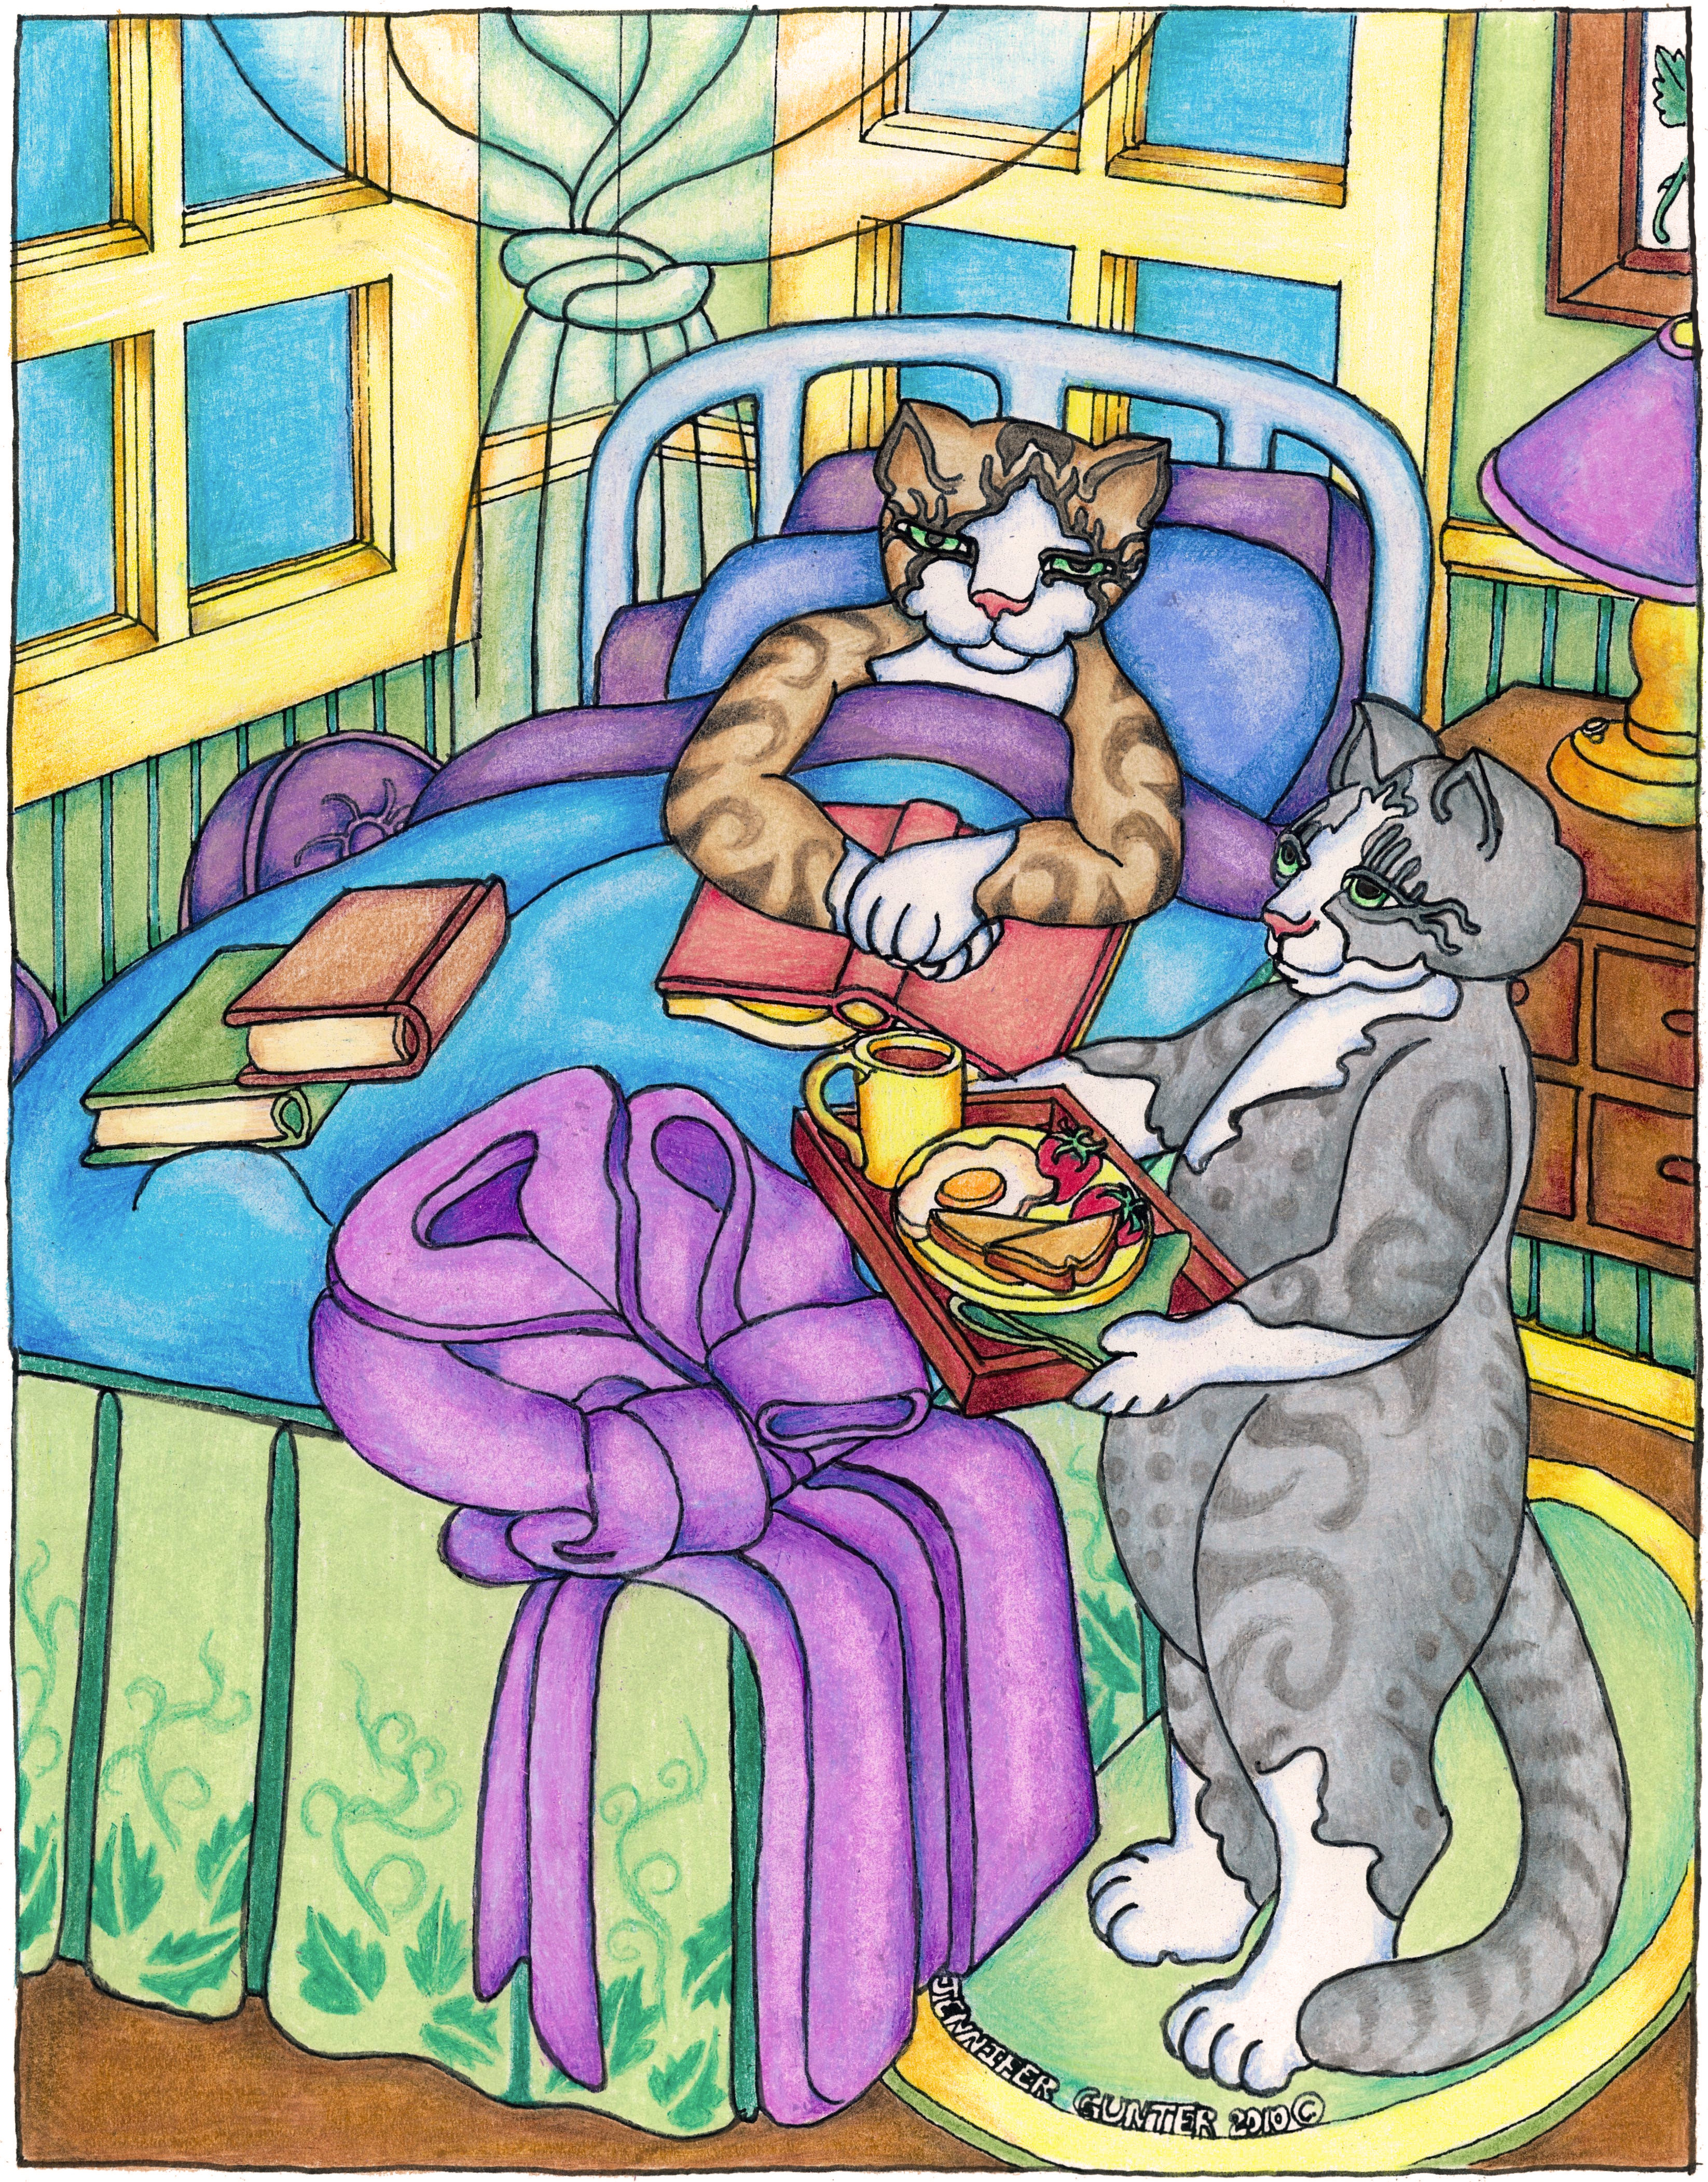 Breakfast in Bed_page1_image1-Final